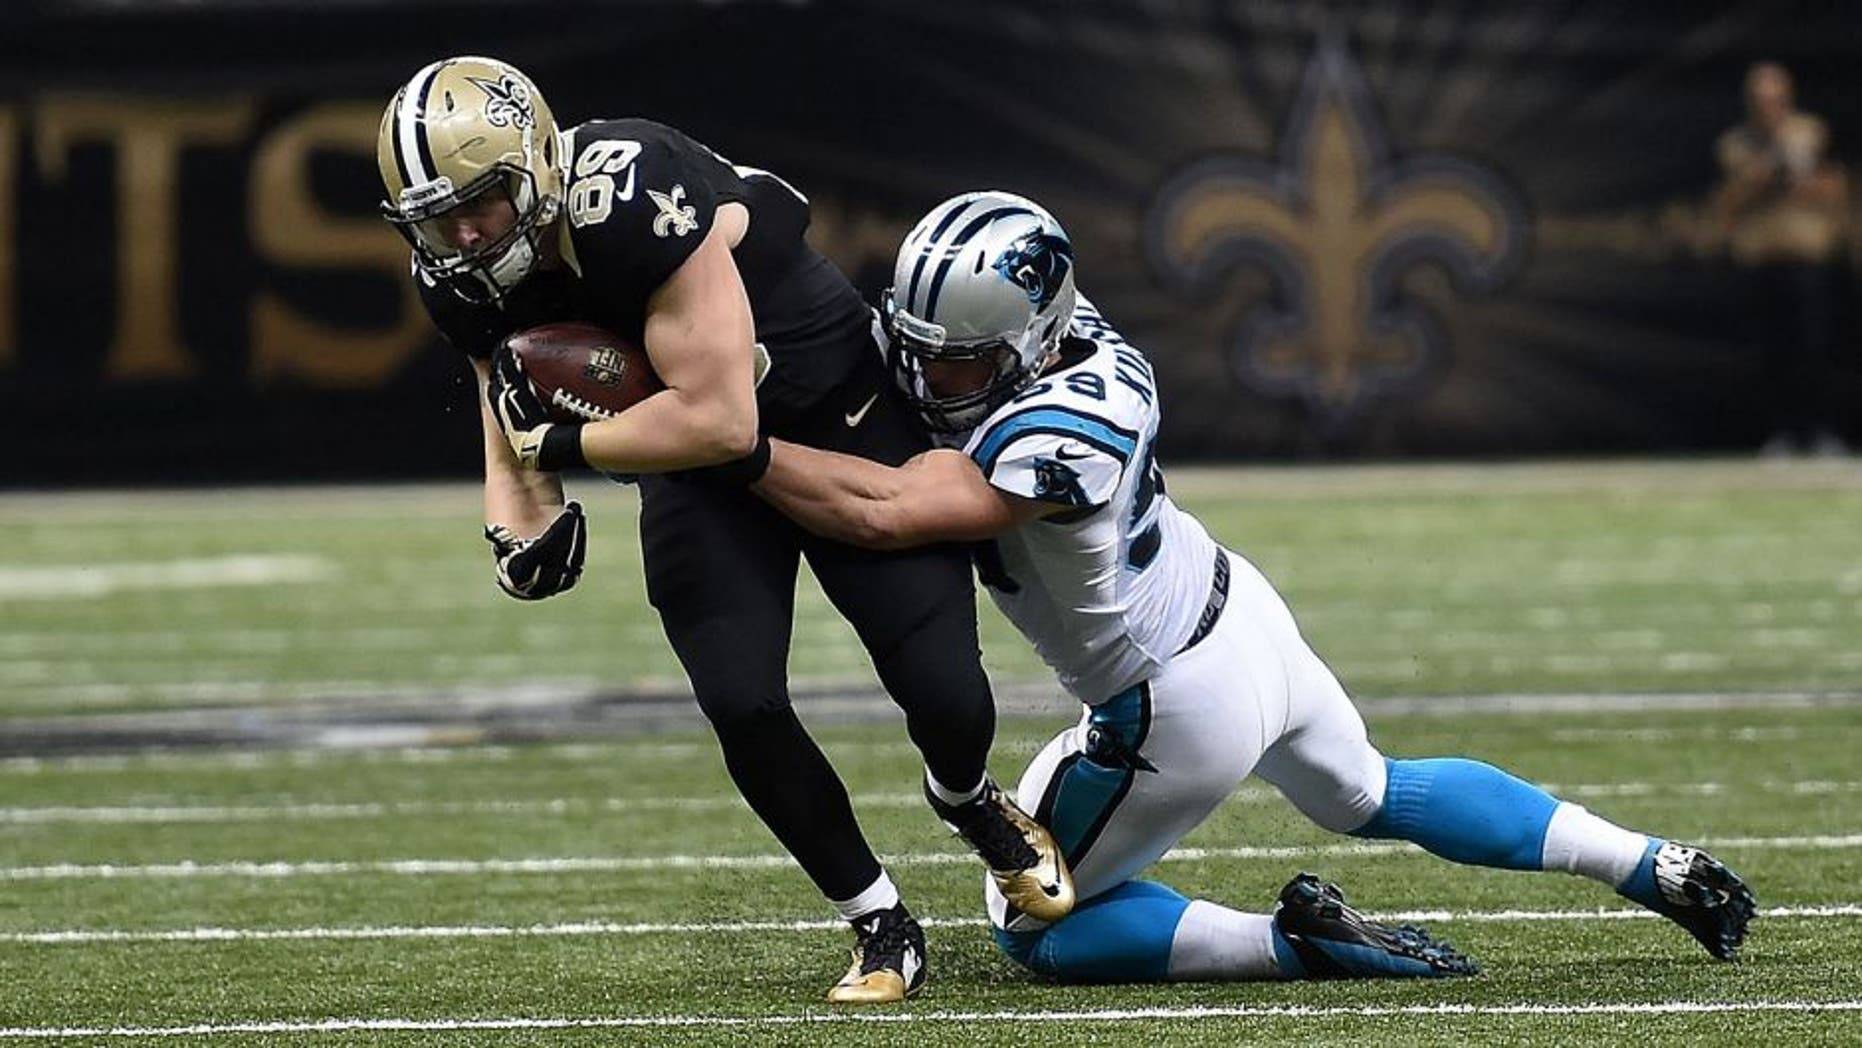 NEW ORLEANS, LA - DECEMBER 06: Josh Hill #89 of the New Orleans Saints is brought down by Luke Kuechly #59 of the Carolina Panthers during a game at the Mercedes-Benz Superdome on December 6, 2015 in New Orleans, Louisiana. Carolina defeated New Orleans 41-38. (Photo by Stacy Revere/Getty Images)